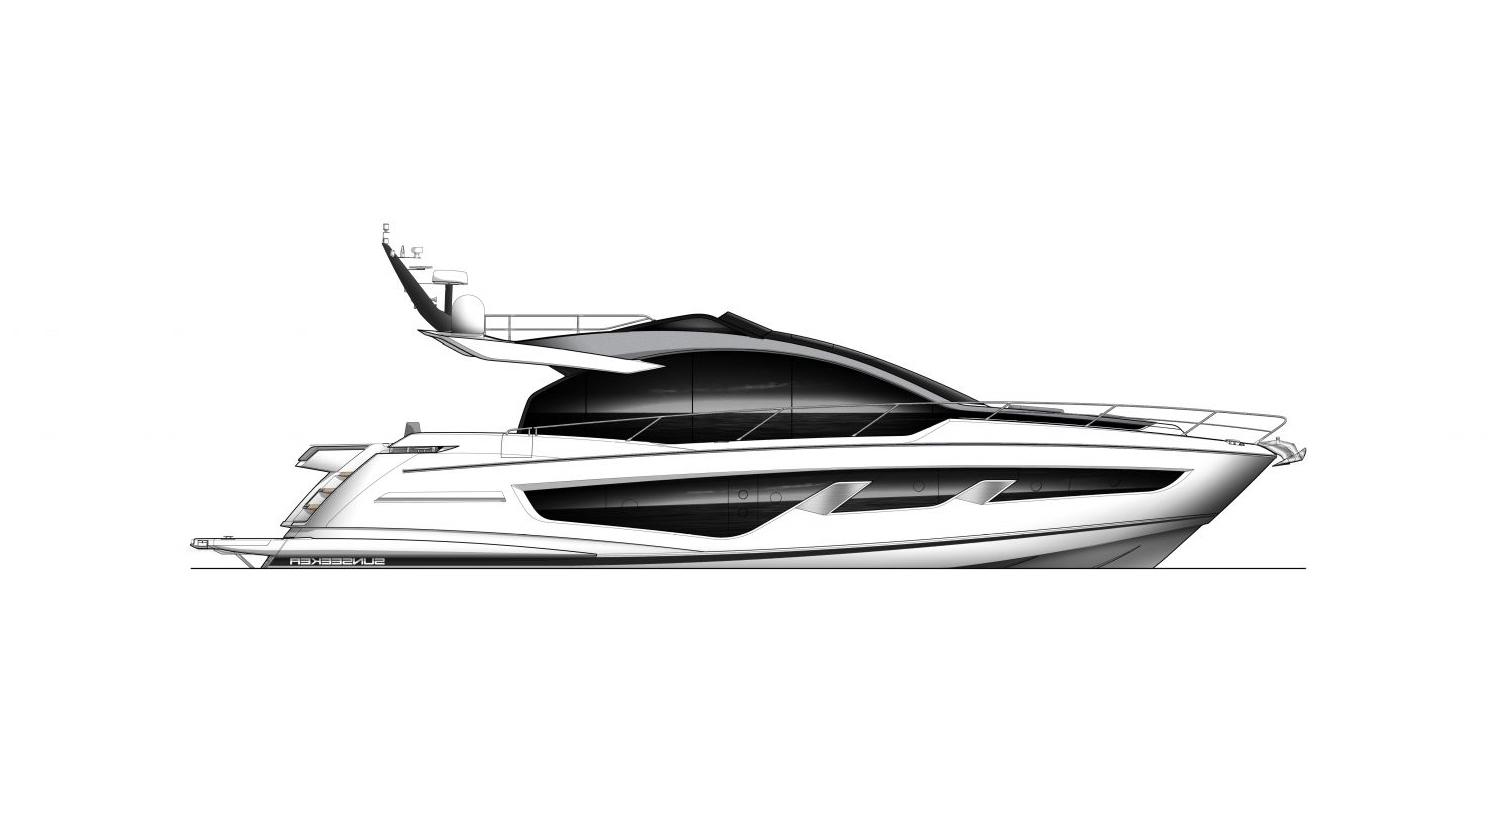 2021 Sunseeker 65 Sport Yacht #SS420 inventory image at Sun Country Yachts in Newport Beach